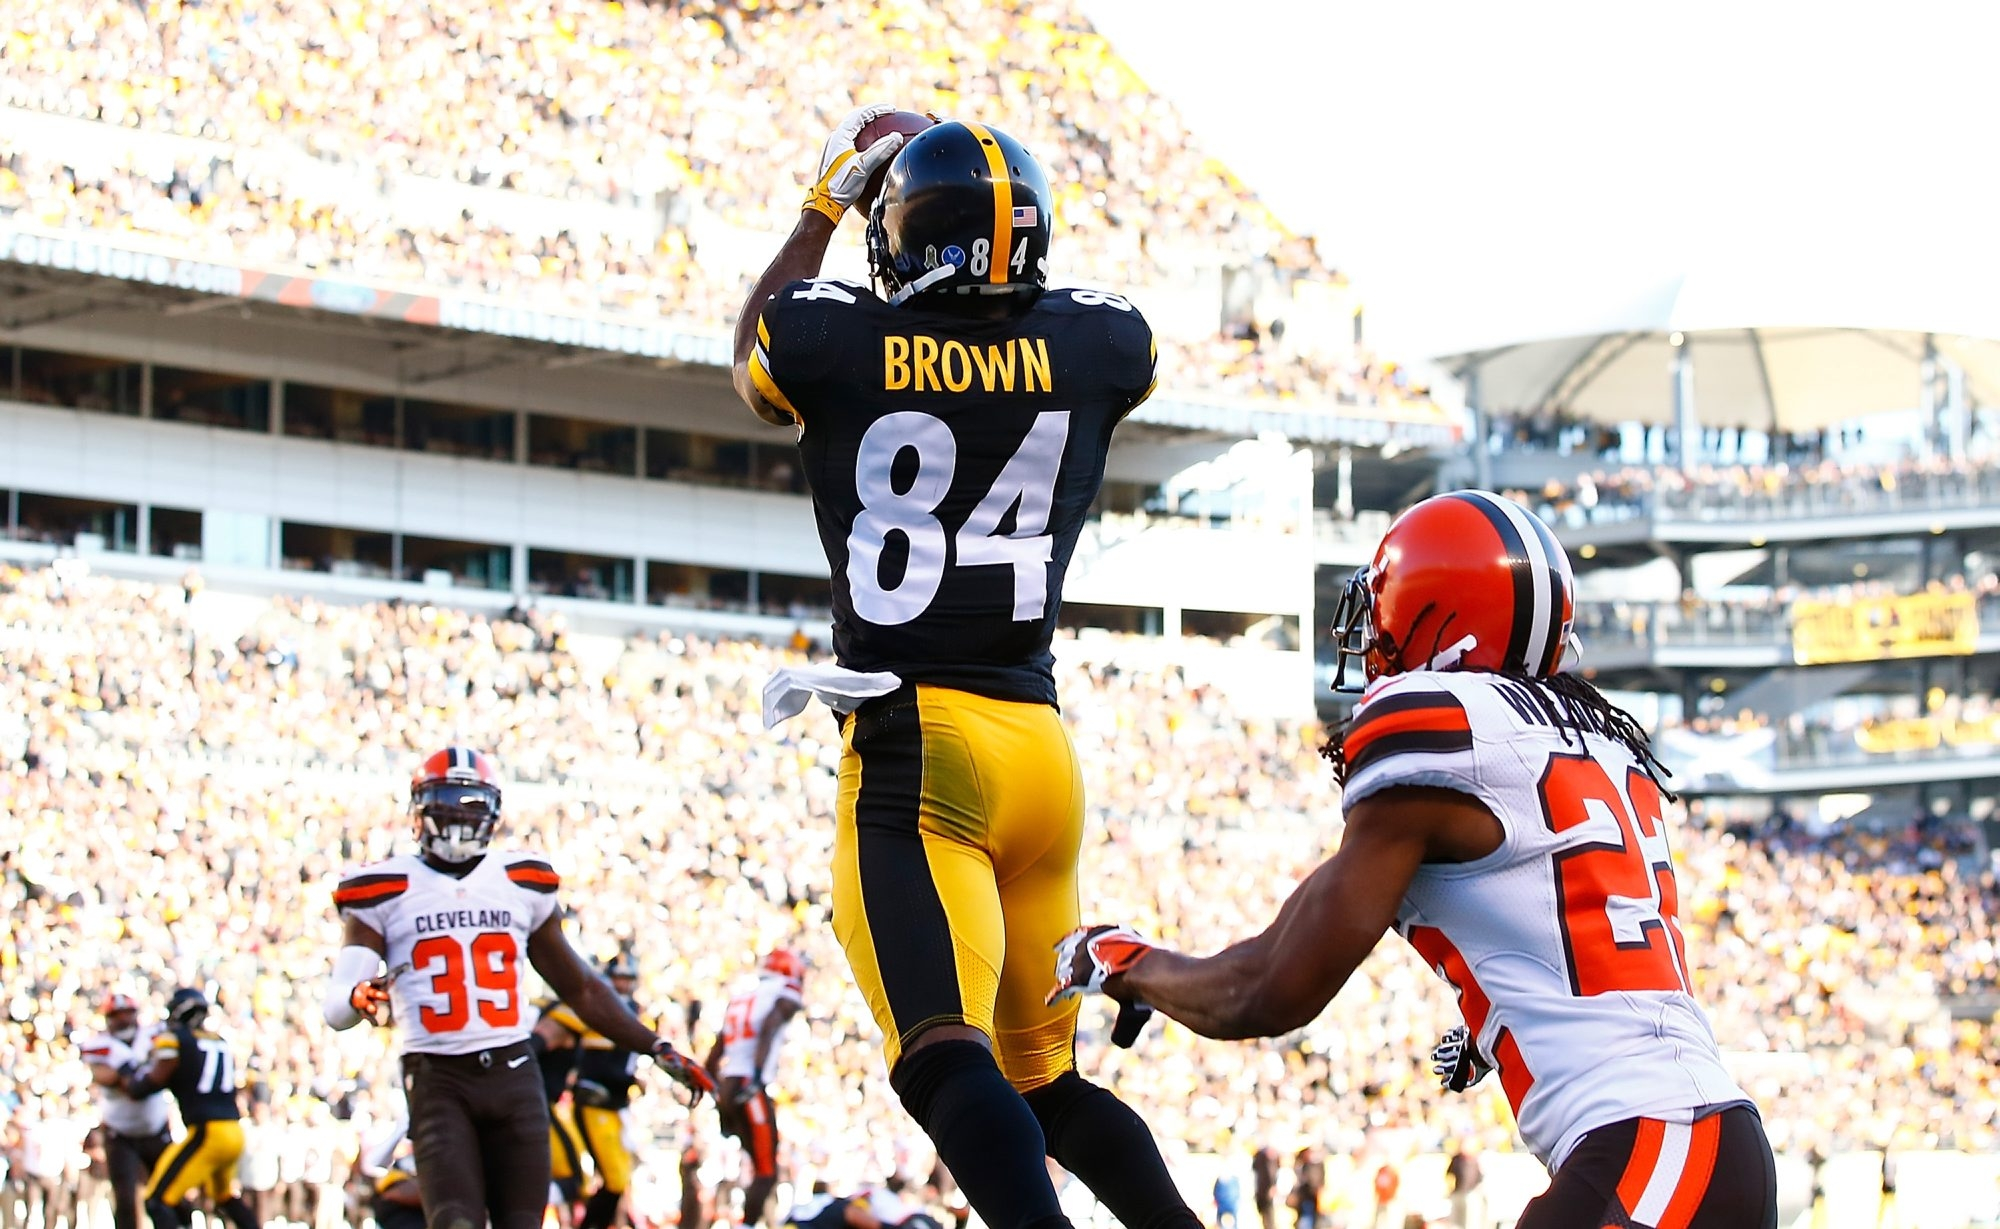 2LINE CUTLINE Antonio Brown of the Pittsburgh Steelers scores a 2-point conversion during the 2nd quarter of the game against the Cleveland Browns at Heinz Field on November 15, 2015 in Pittsburgh, Pennsylvania.  (Photo by Jared Wickerham/Getty Images)